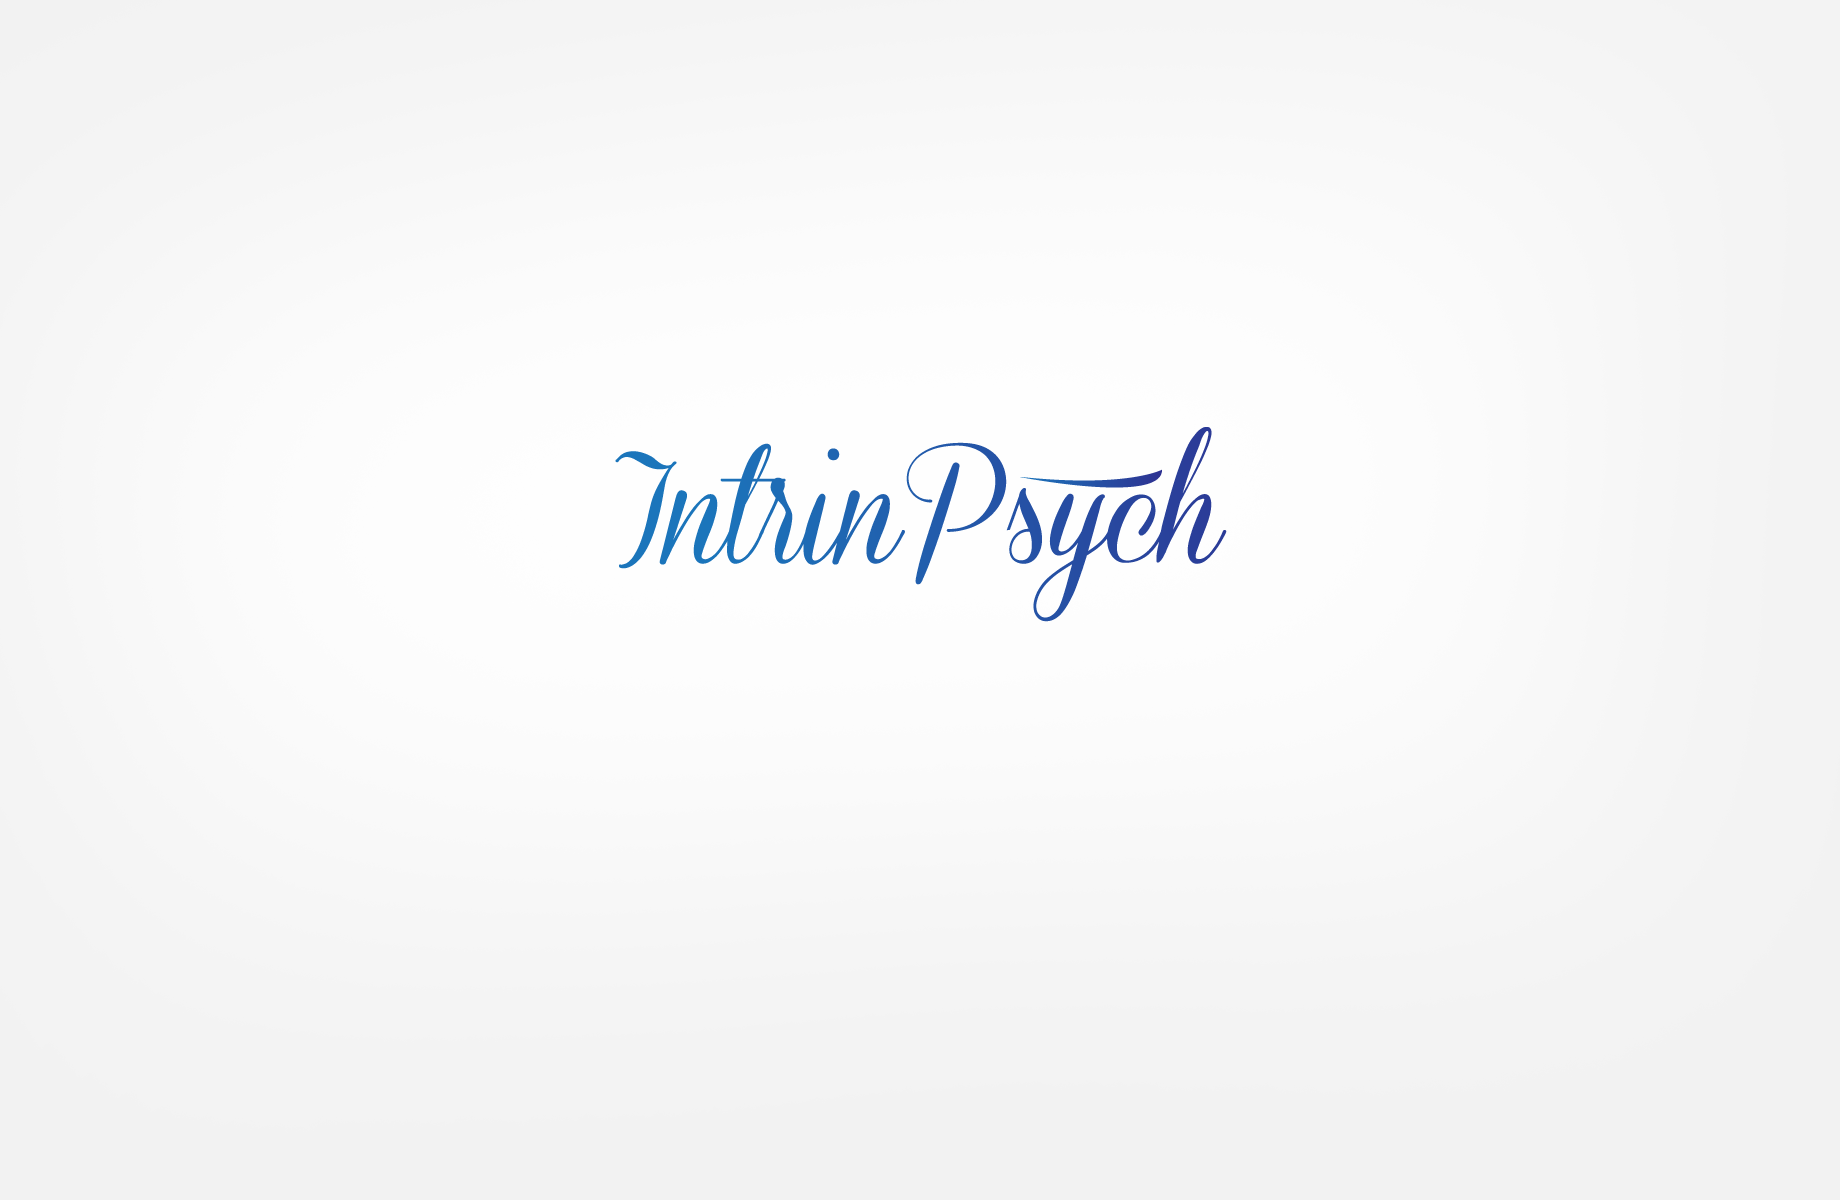 Logo Design by Jan Chua - Entry No. 76 in the Logo Design Contest New Logo Design for IntrinPsych.